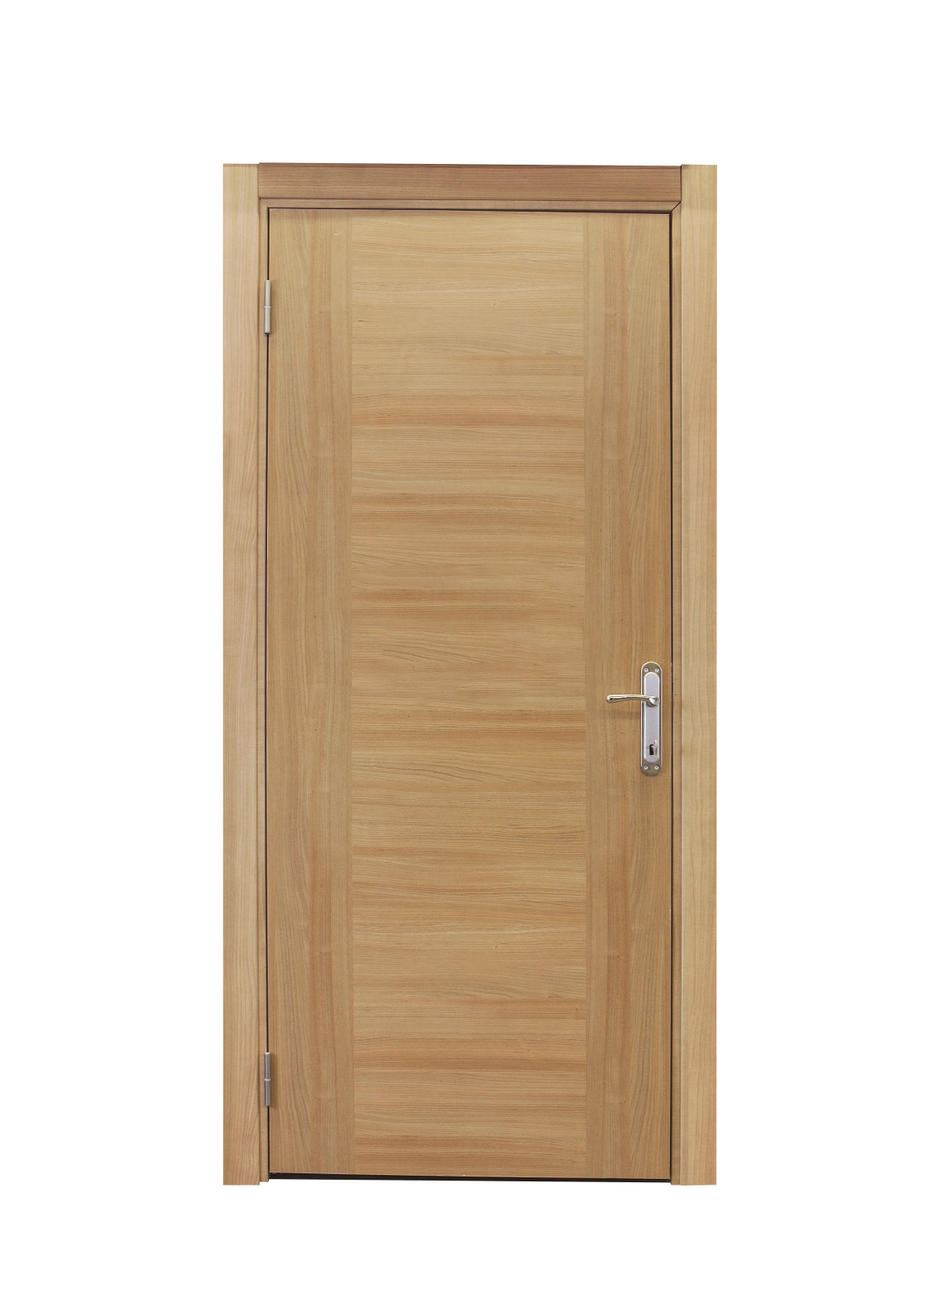 2 Hours Fireproof Low Price India pakistan Carving Models Double Main Door Pictures Interior Panel Simple Design Teak Wood Door